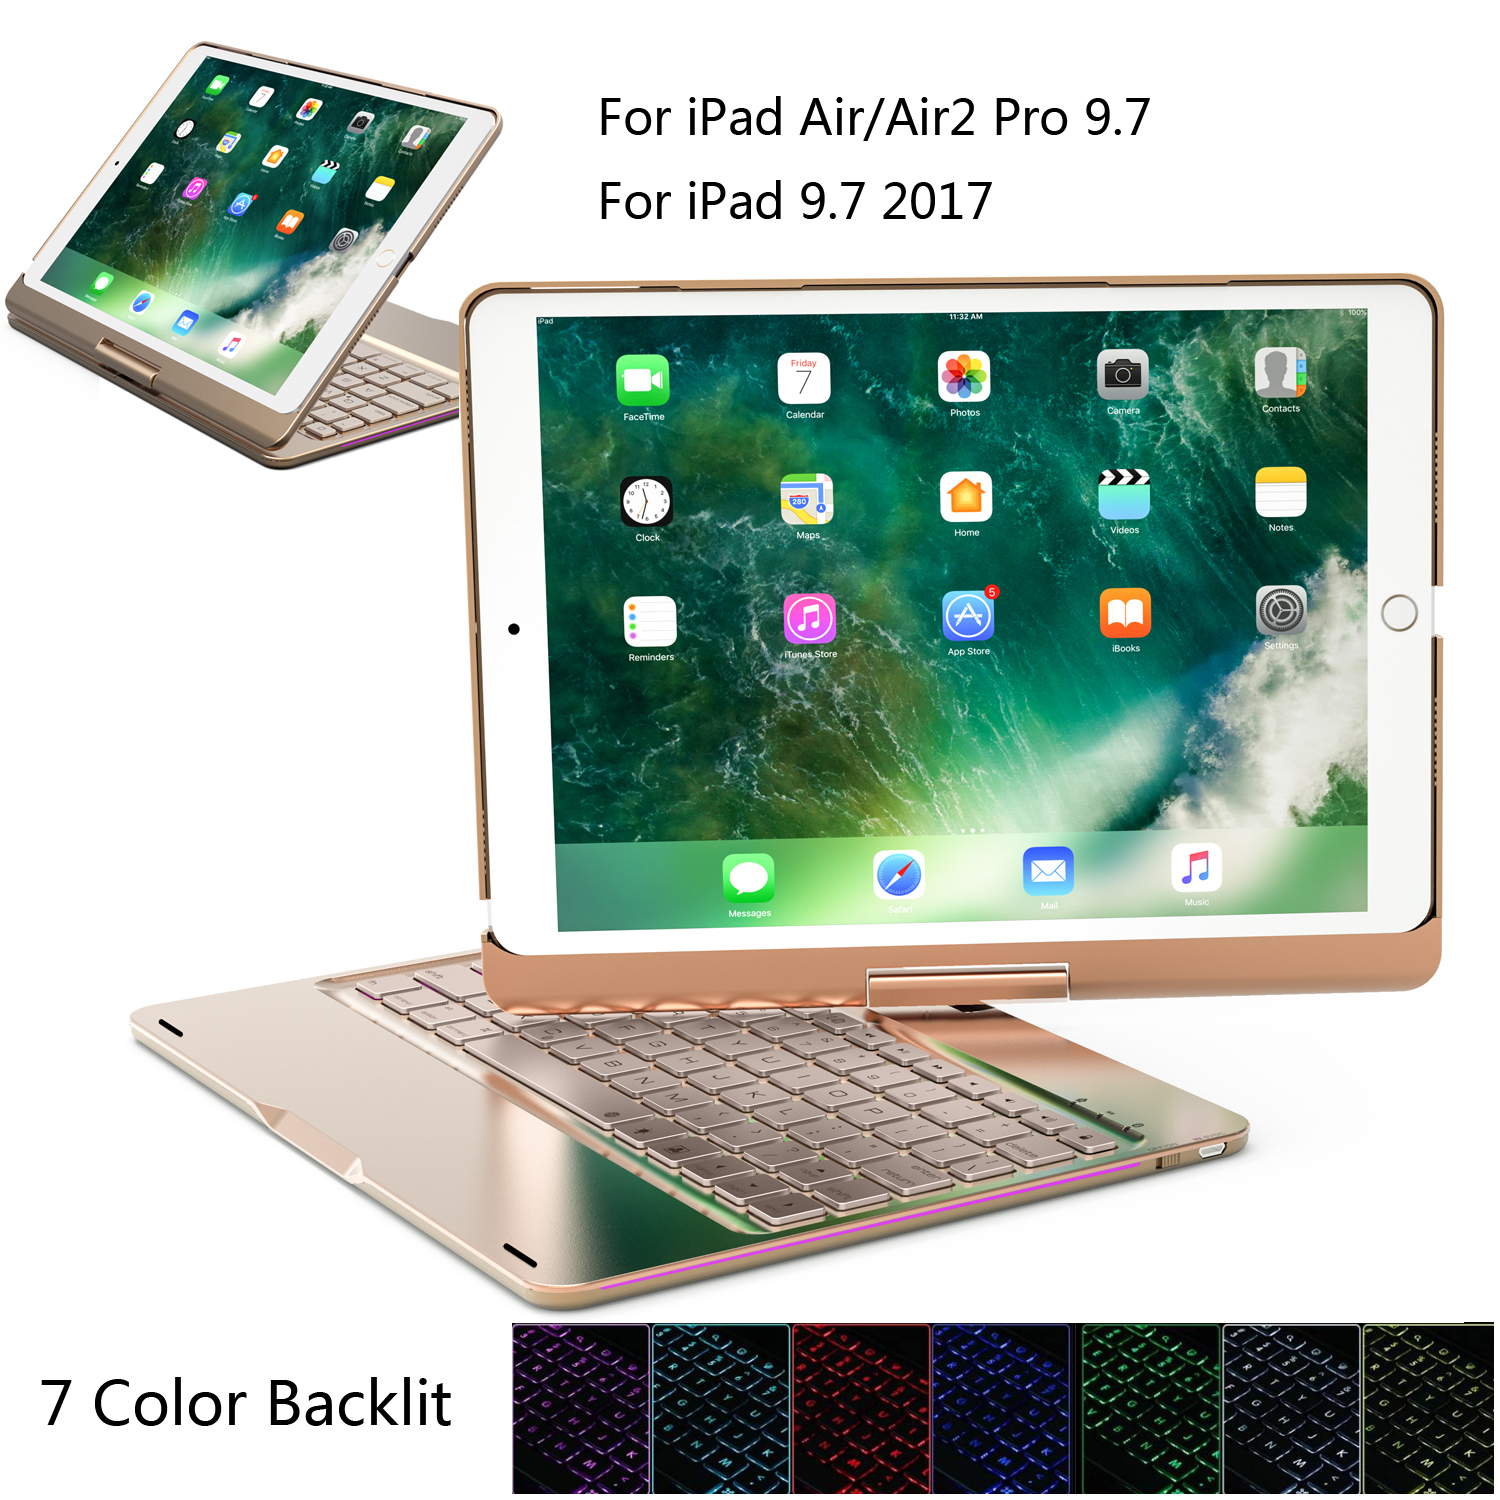 Bluetooth Keyboard for Apple iPad 9.7 Inch 2017 Wireless Keyboard Case for iPad Air 1/2 Pro 9.7 360 Degree Rotate 7color Backlit angibabe 360 degree rotatable bluetooth keyboard leather case for ipad air black